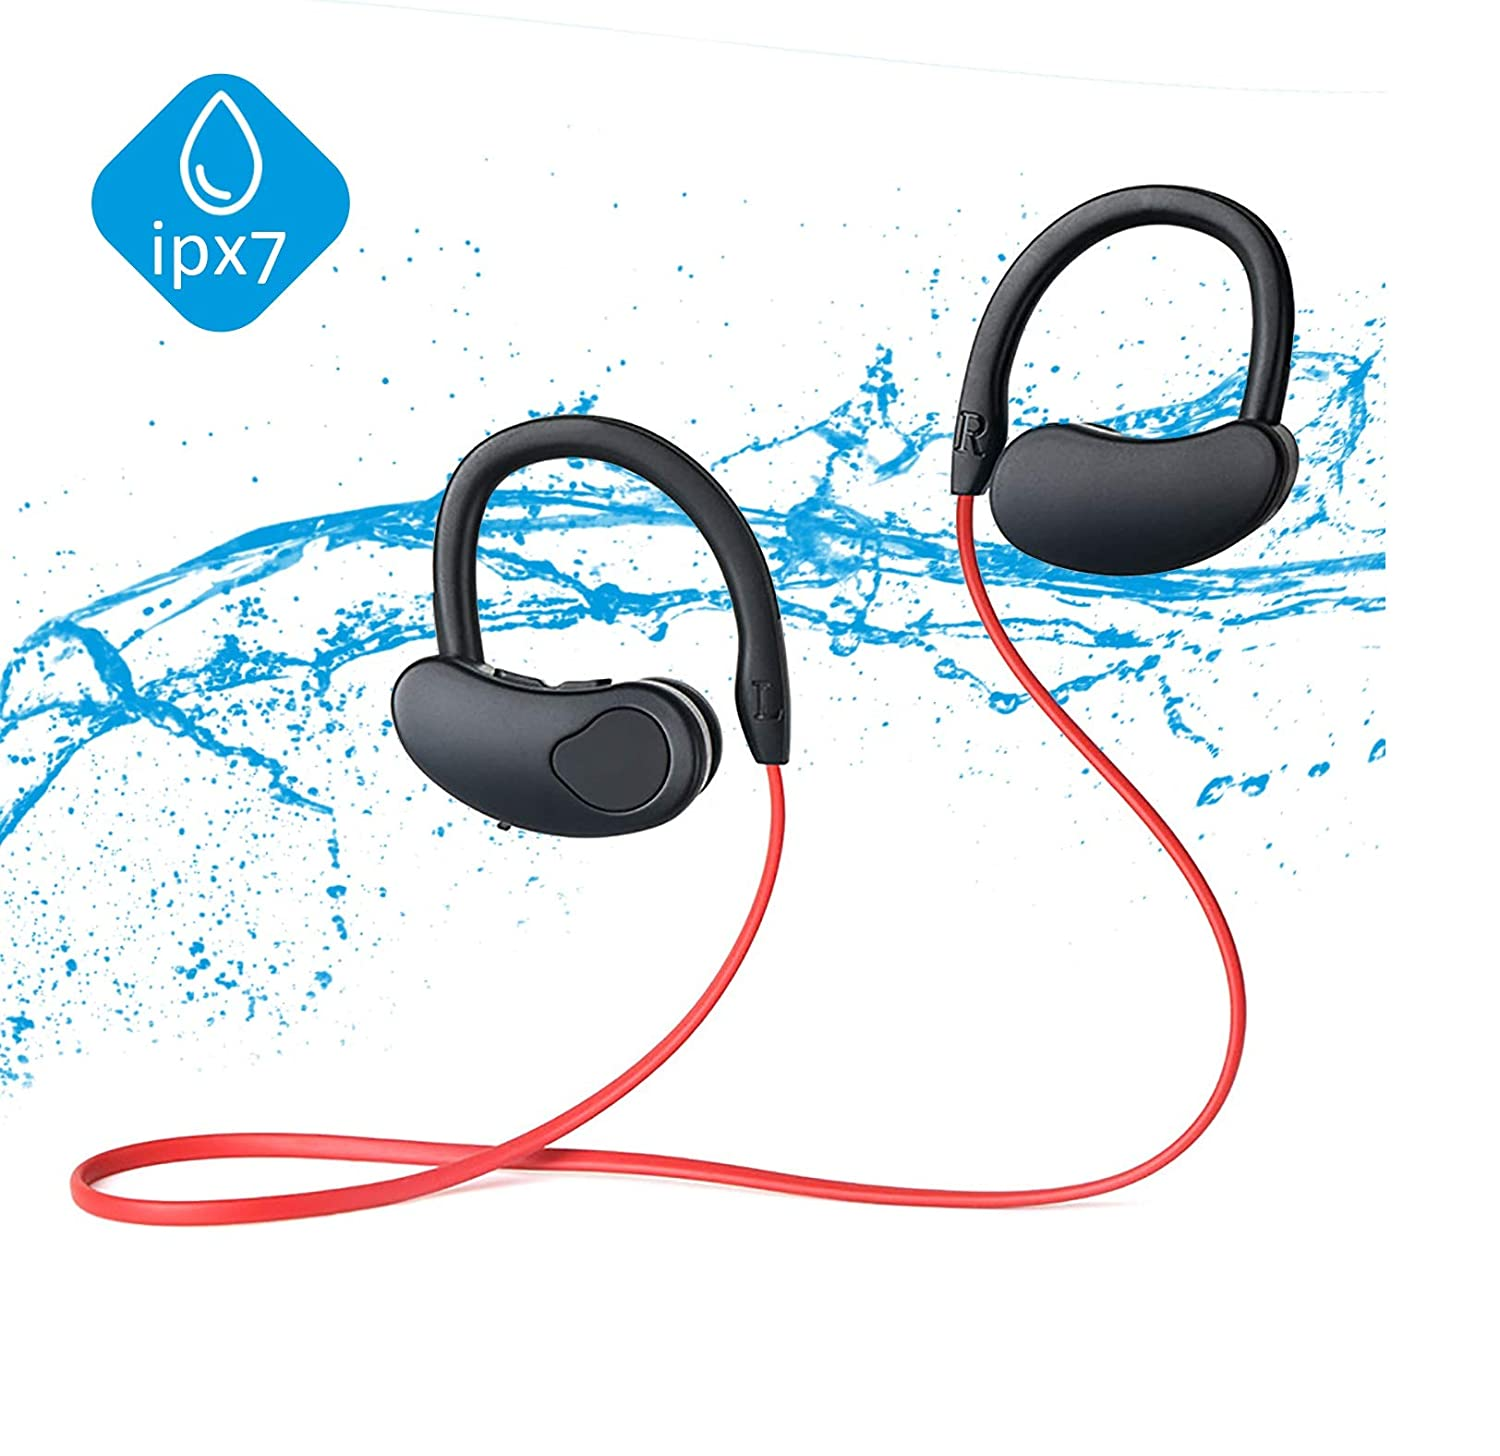 Bluetooth Sport Headphones Bluetooth Headset Wireless Earbuds Bluetooth 5.0 HiFi Bass Stereo Sweatproof Earbuds w Mic Noise Cancelling Headset for Workout Running Gym